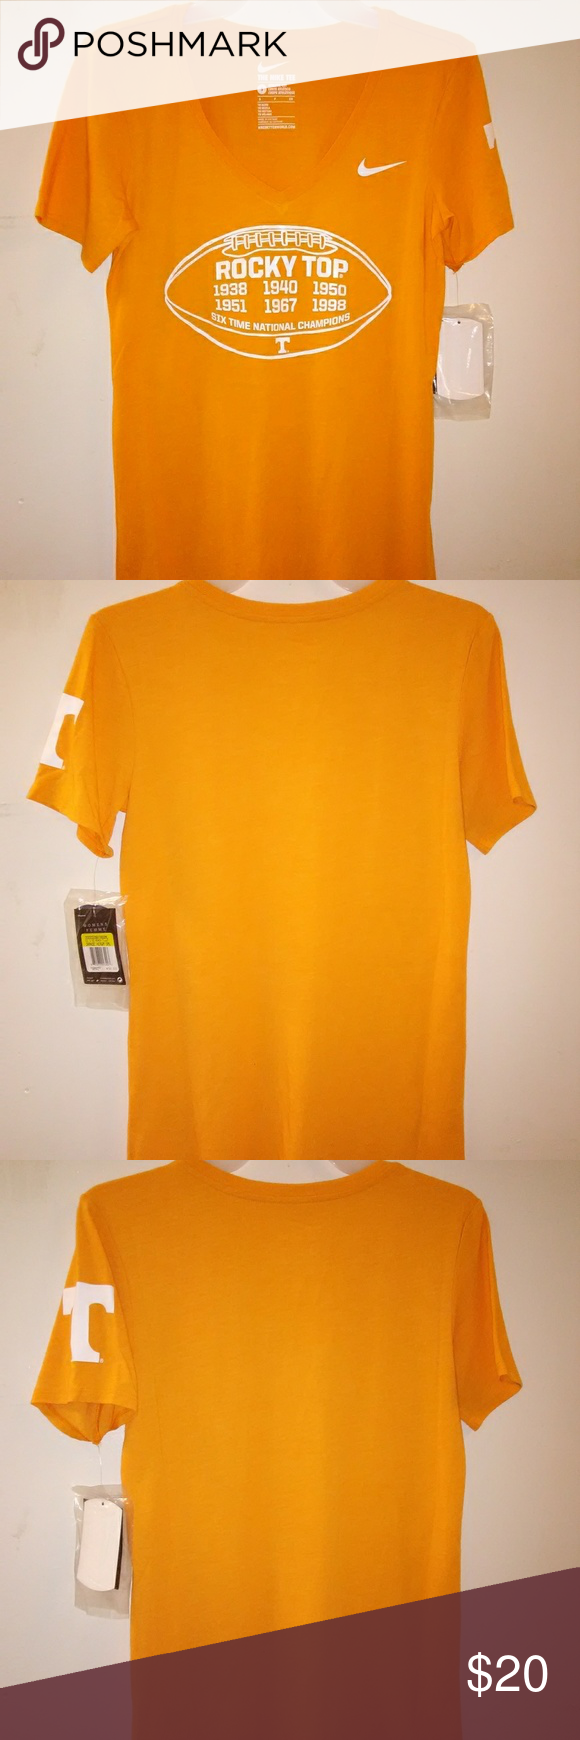 ec4ca153 Nike Rocky Top T-shirt Tennessee volunteers New with tags small tag hole in  collar. Nike Tops Tees - Short Sleeve